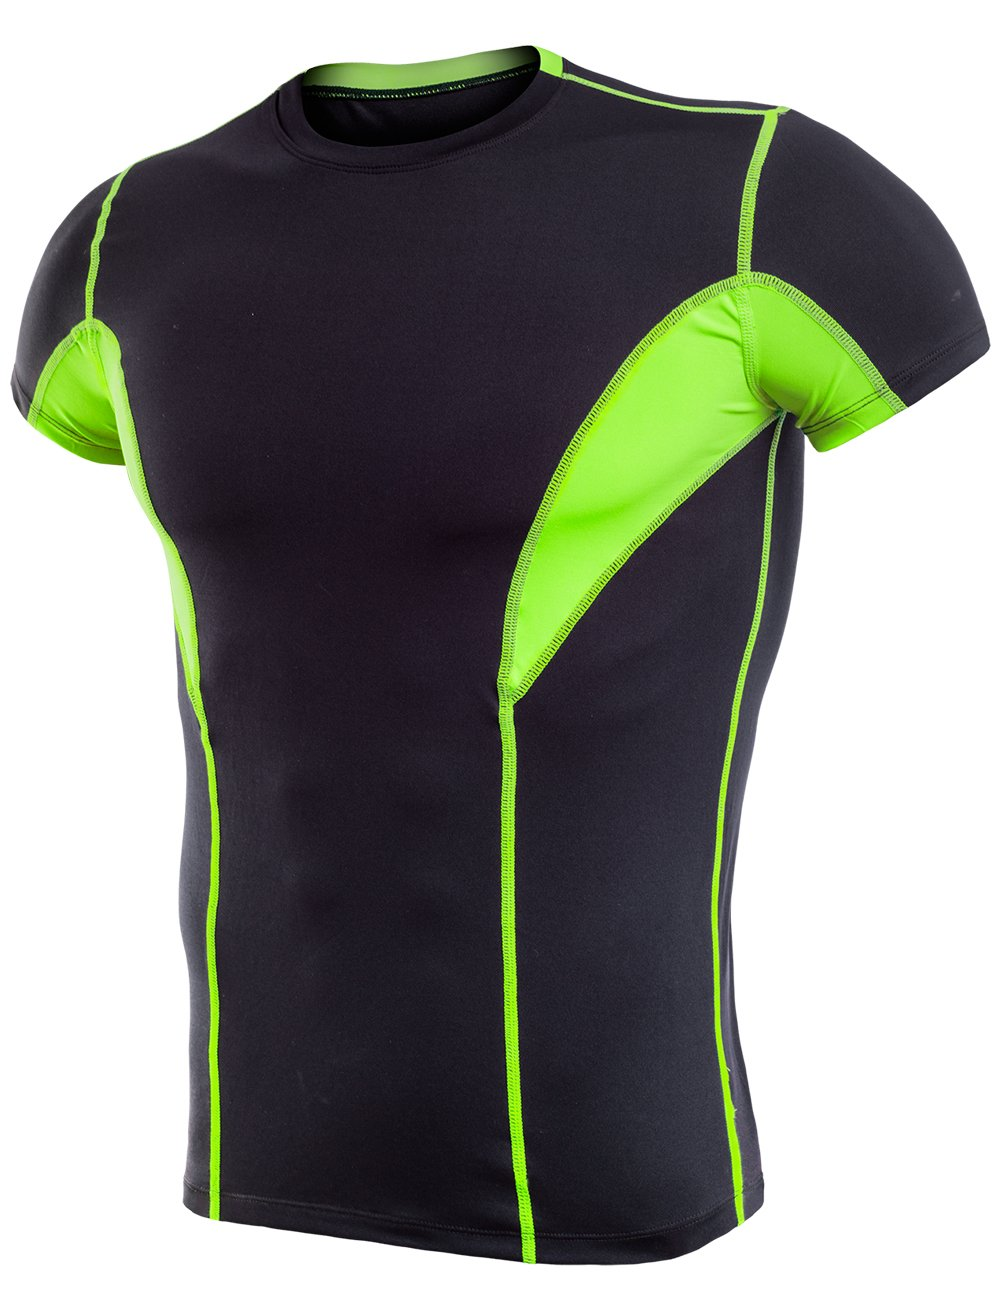 Lavento Men's Cool Dry Compression Shirts Short-Sleeve Workout T-Shirts (1 Pack-17105 Black/neon Green,3X-Large)